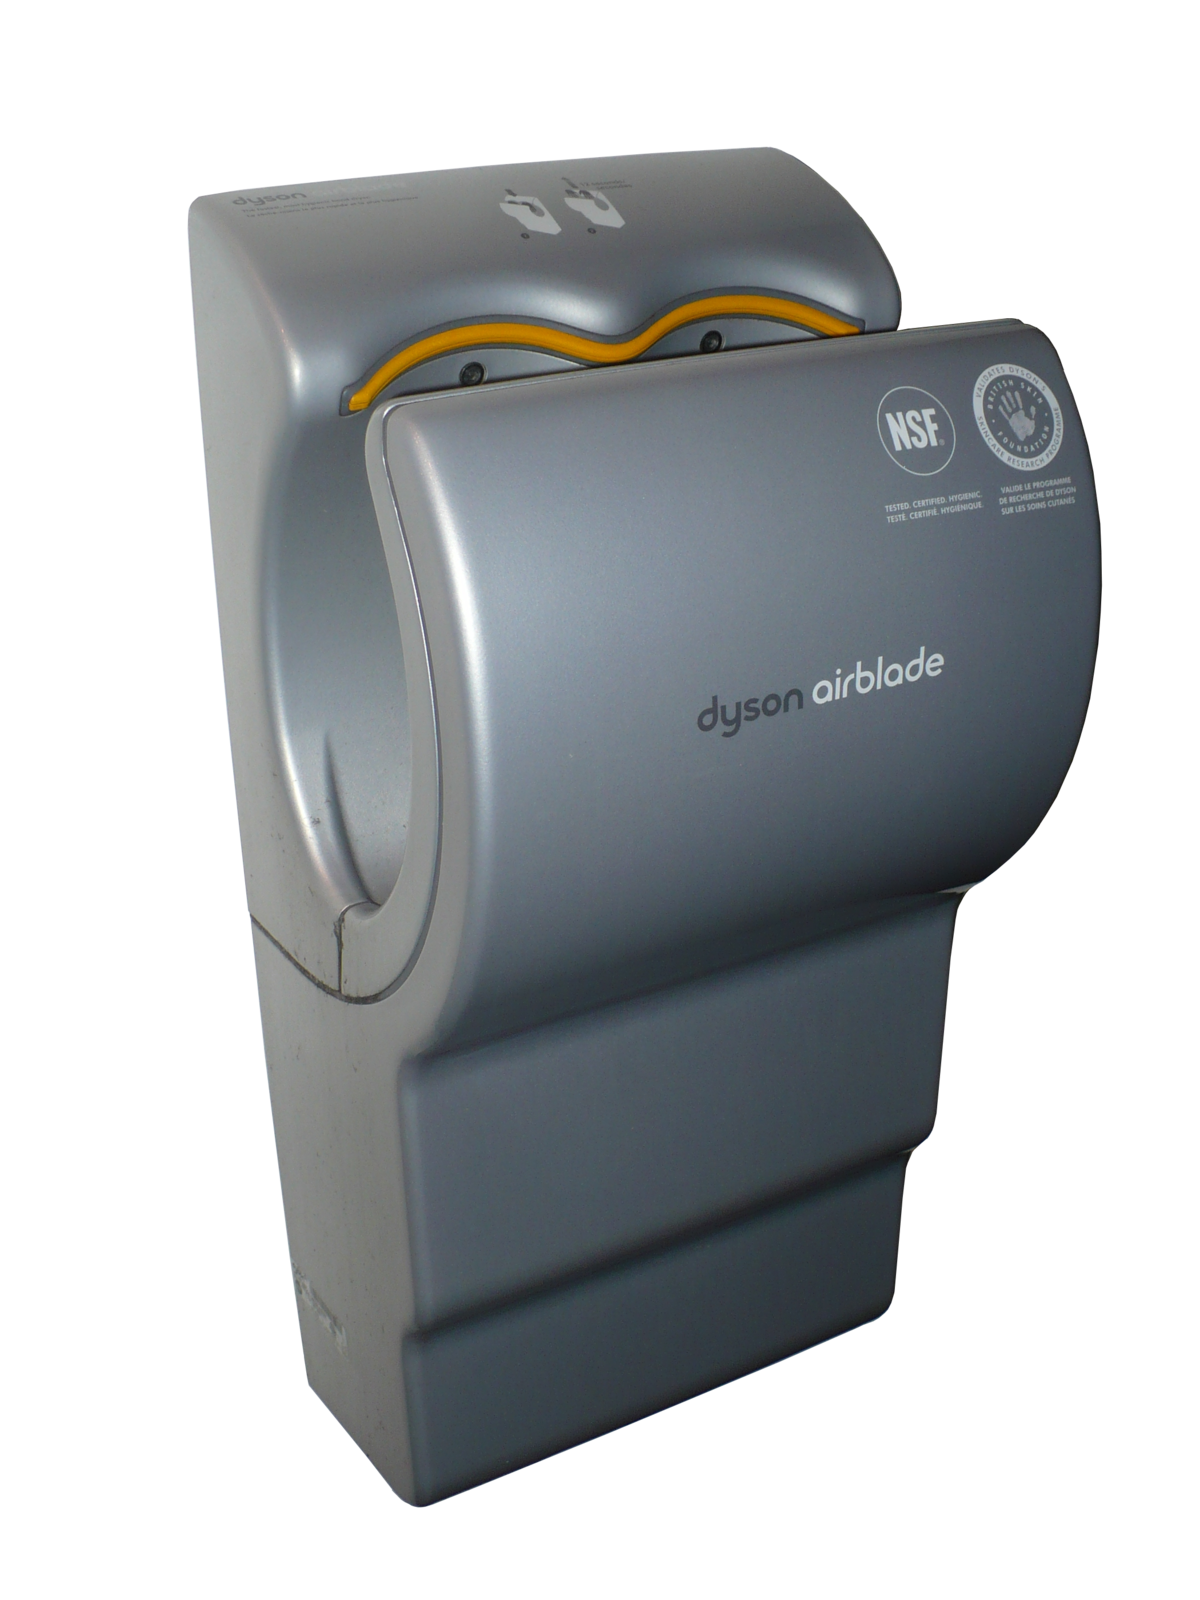 dyson airblade wikipedia - Air Hand Dryers